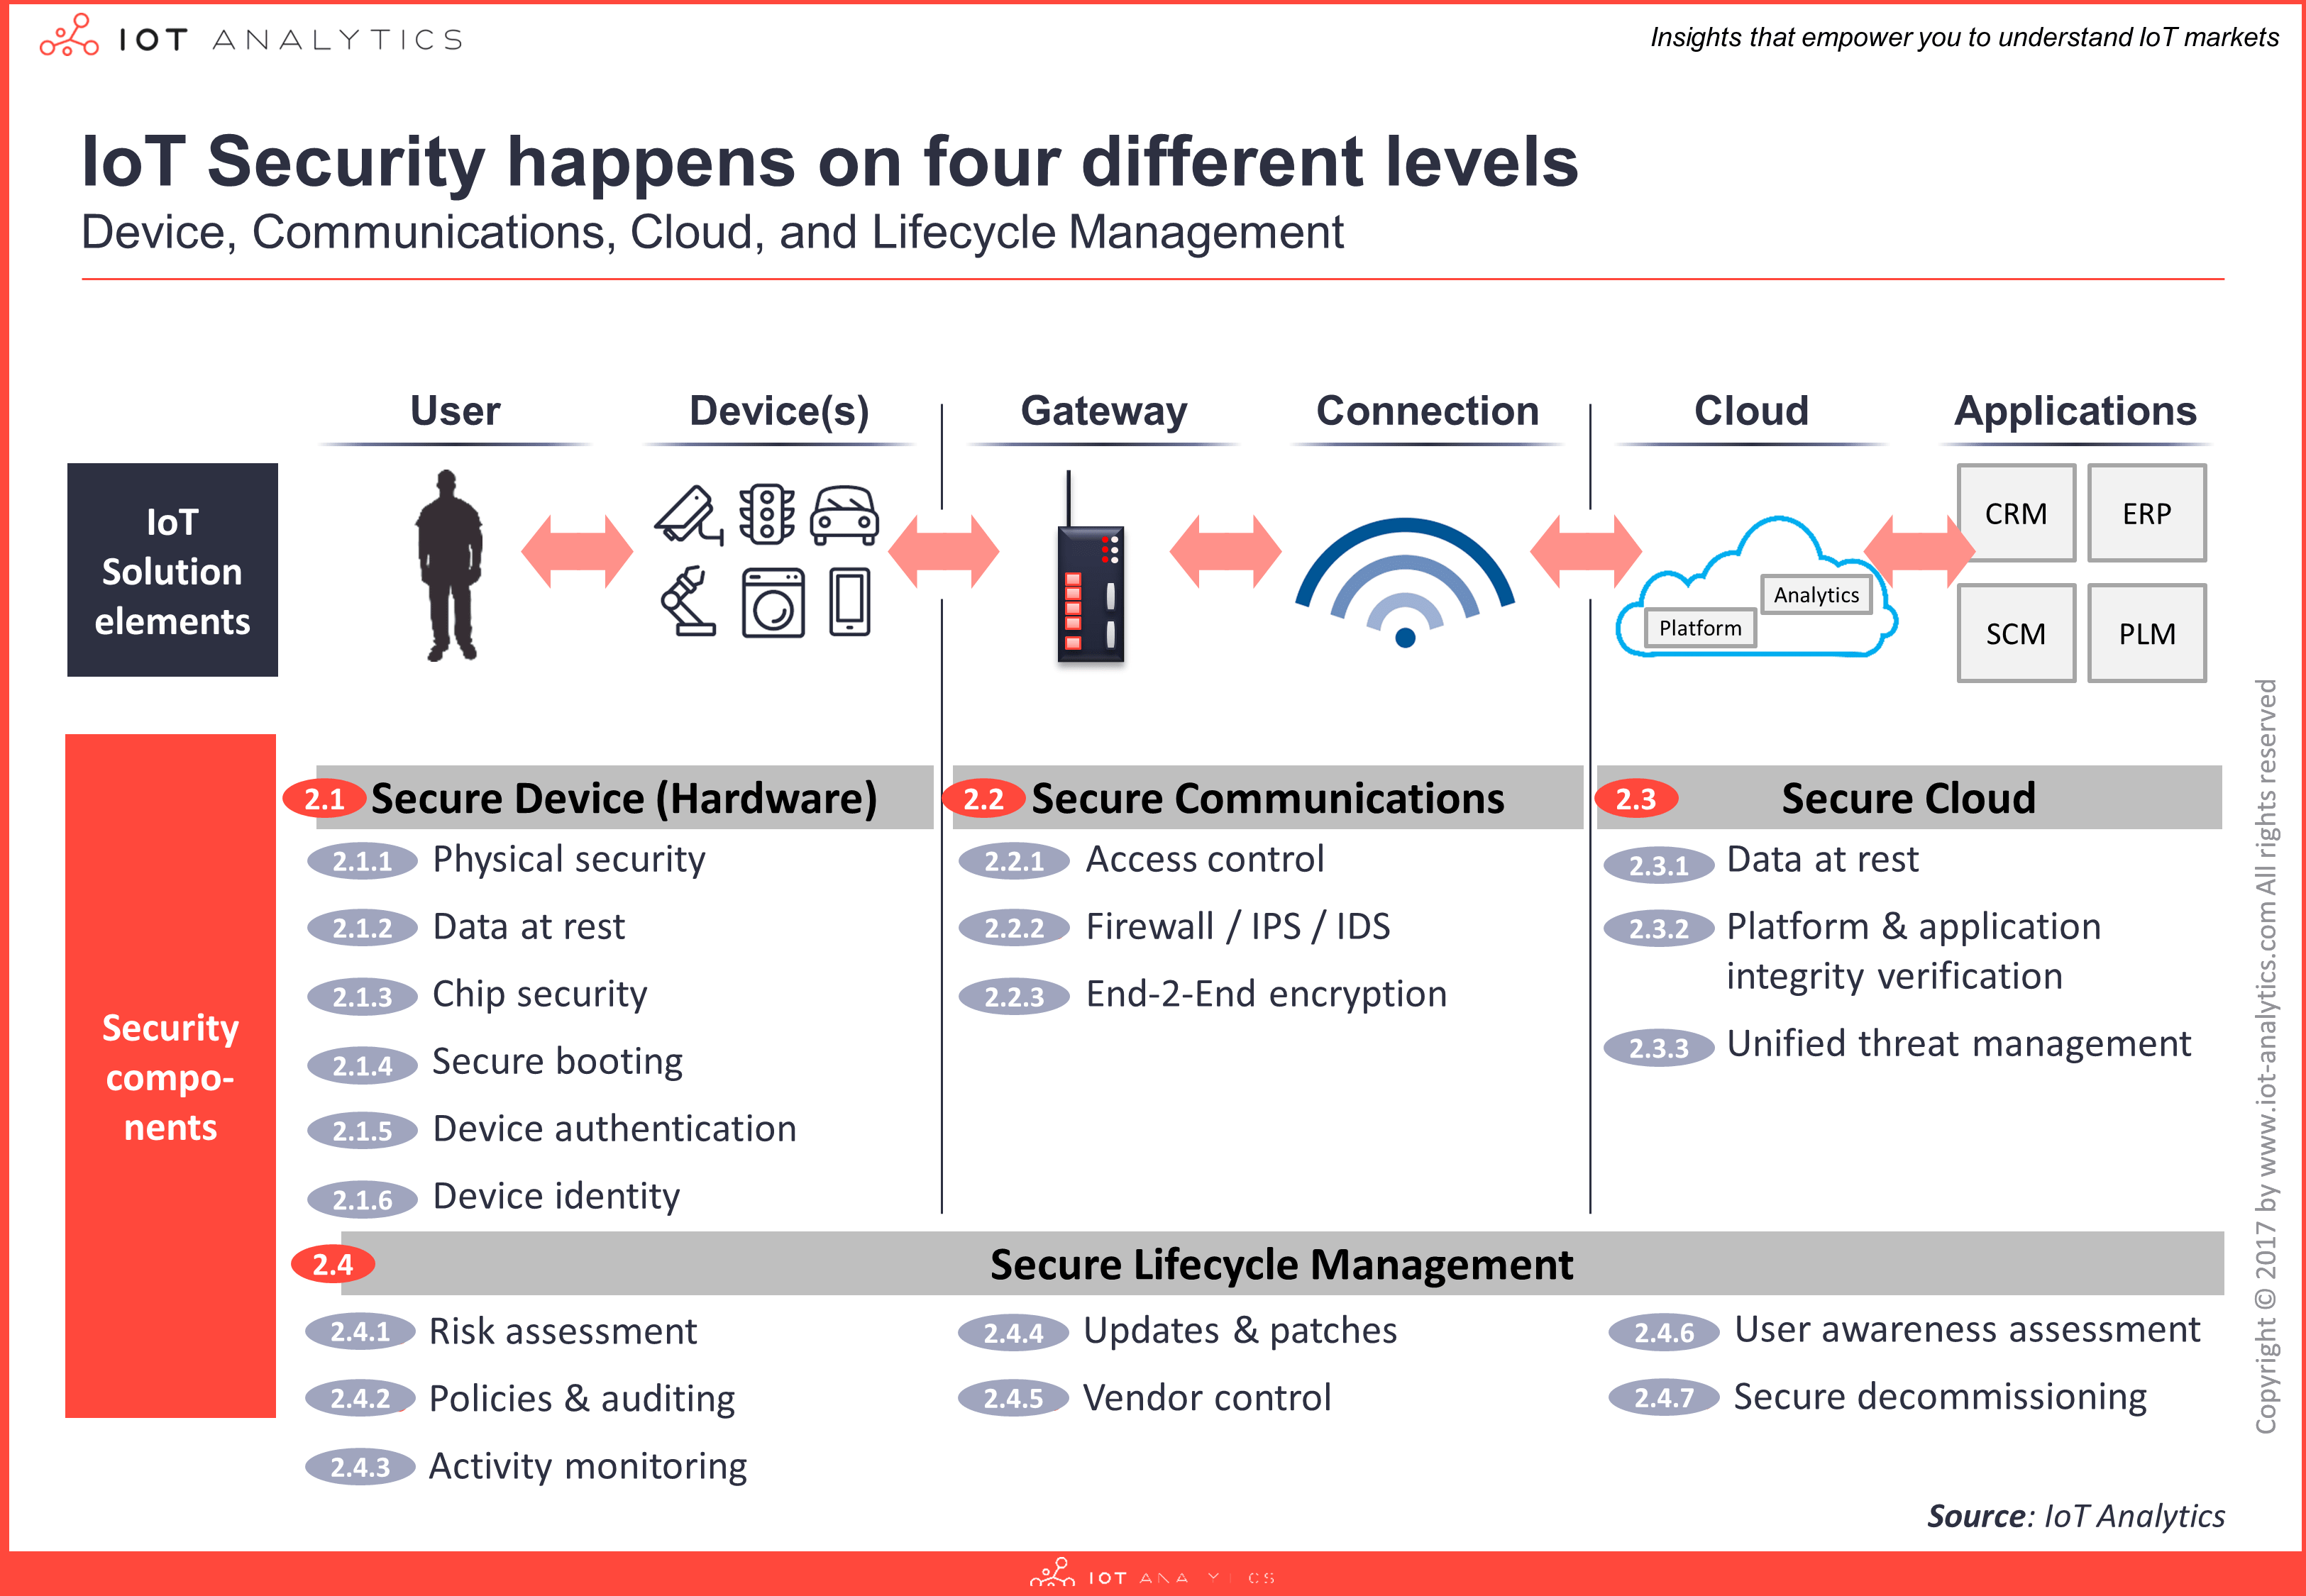 IoT Security Happens on Four Different Levels Image